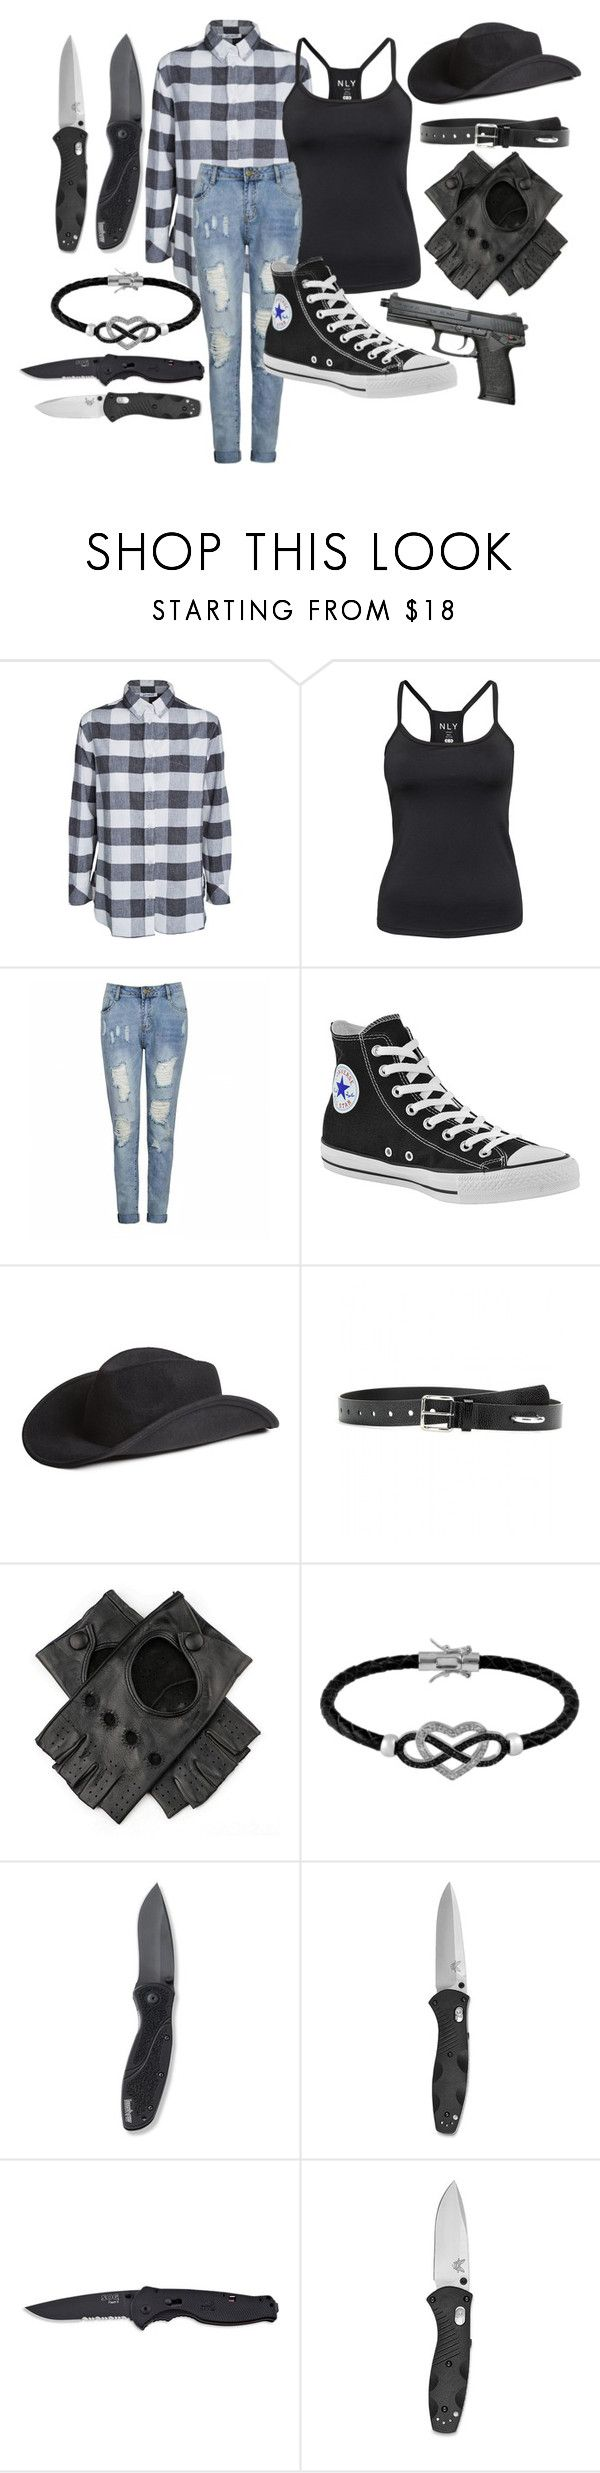 """""""Evan Rhee *The Walking Dead Fanfiction* Outfit 2"""" by lauren-mossgotheridge ❤ liked on Polyvore featuring Gat Rimon, Ally Fashion, Converse, H&M, Acne Studios, Jewel Exclusive, Kershaw and Handle"""